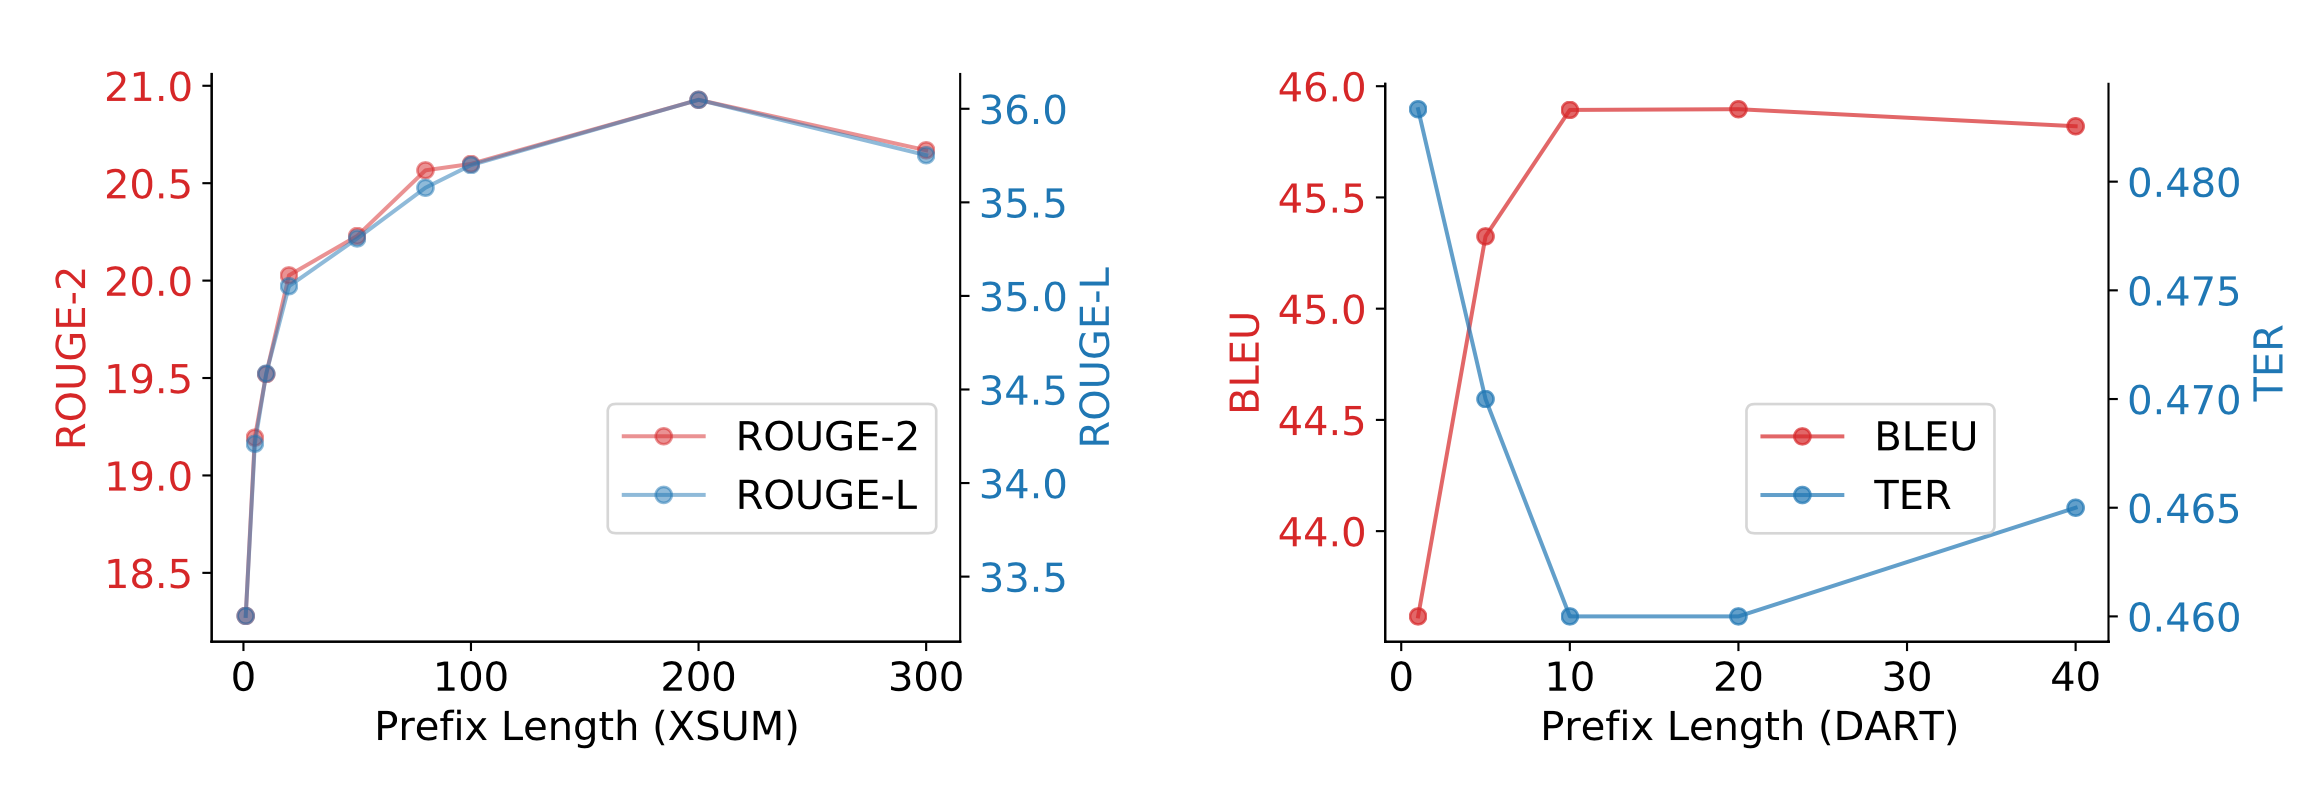 Task performance, summarization (left) and table-to-text (right), as a function of prefix length.